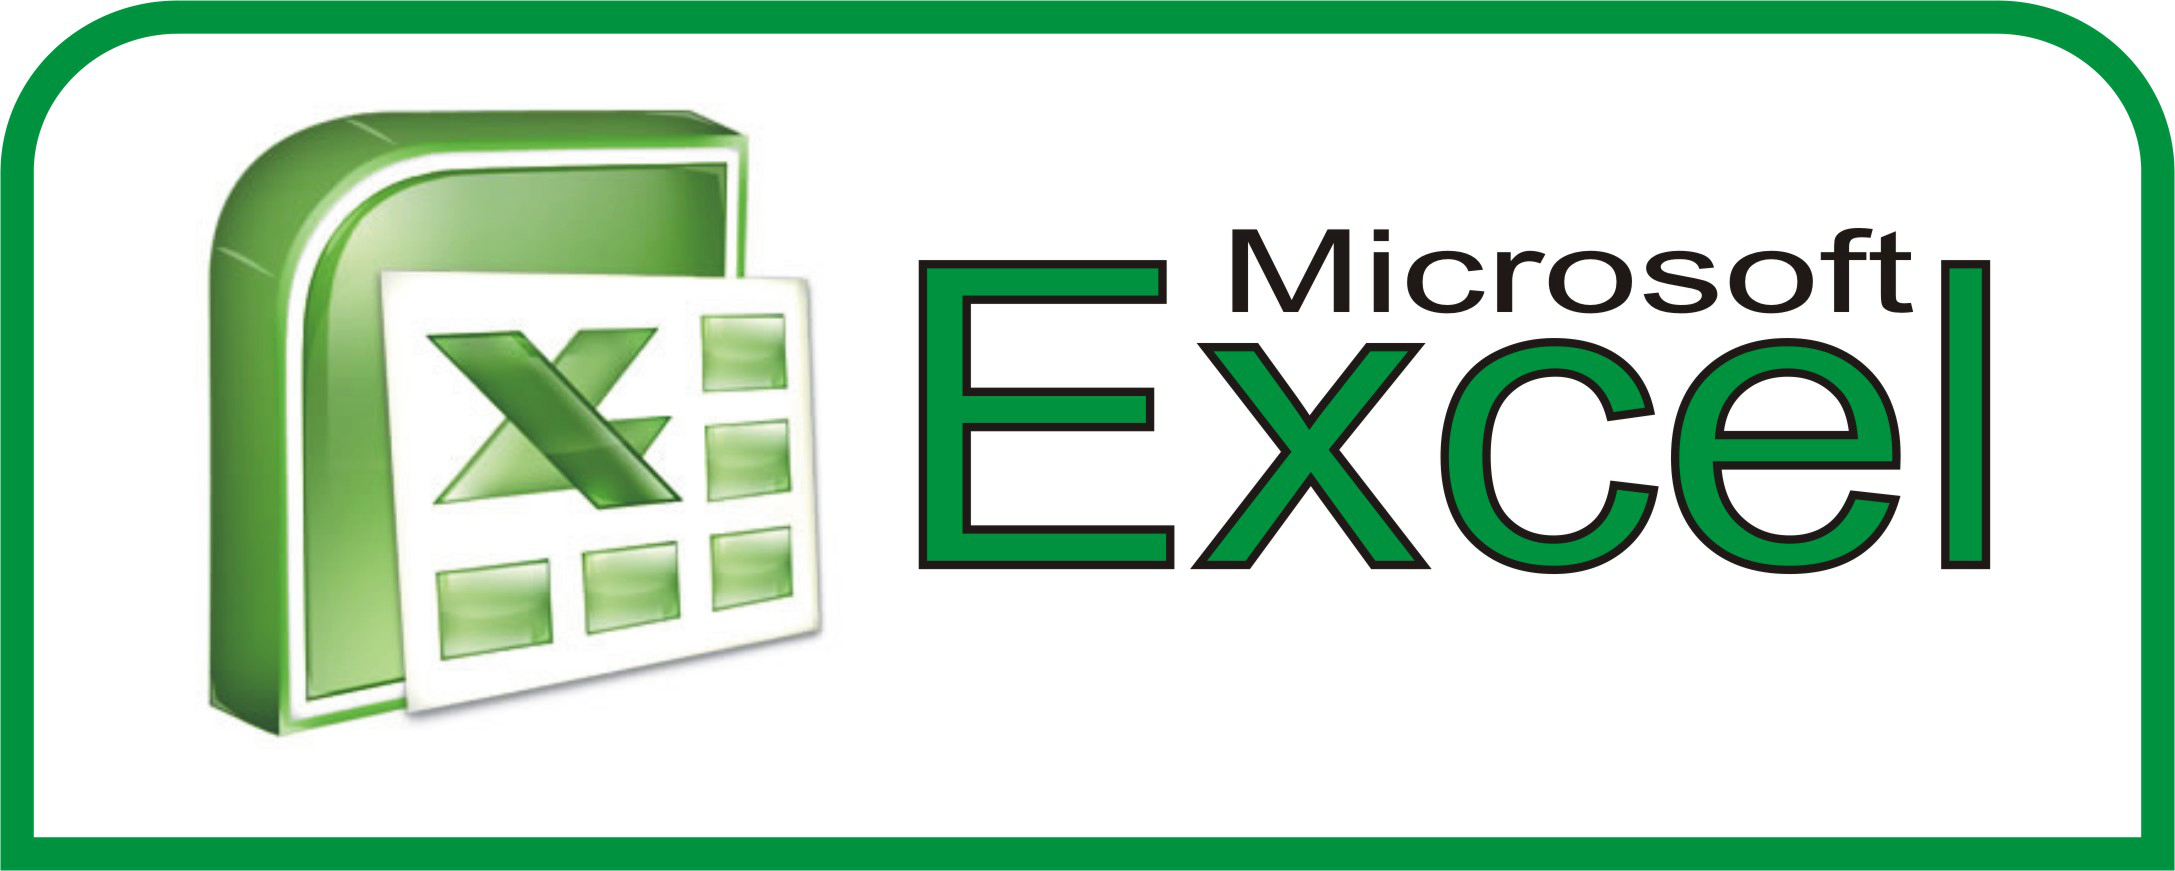 Ediblewildsus  Outstanding  Excel Shortcuts You Probably Didnt Know About  Techdissected With Interesting Discount Rate In Excel Besides Powerpoint To Excel Furthermore Capm Regression Excel With Astounding Mortgage Payment Formula In Excel Also Excel Countif  Criteria In Addition If Contains Excel Formula And Excel Roi Calculator As Well As Word To Excel Conversion Additionally Excel Skill From Techdissectedcom With Ediblewildsus  Interesting  Excel Shortcuts You Probably Didnt Know About  Techdissected With Astounding Discount Rate In Excel Besides Powerpoint To Excel Furthermore Capm Regression Excel And Outstanding Mortgage Payment Formula In Excel Also Excel Countif  Criteria In Addition If Contains Excel Formula From Techdissectedcom